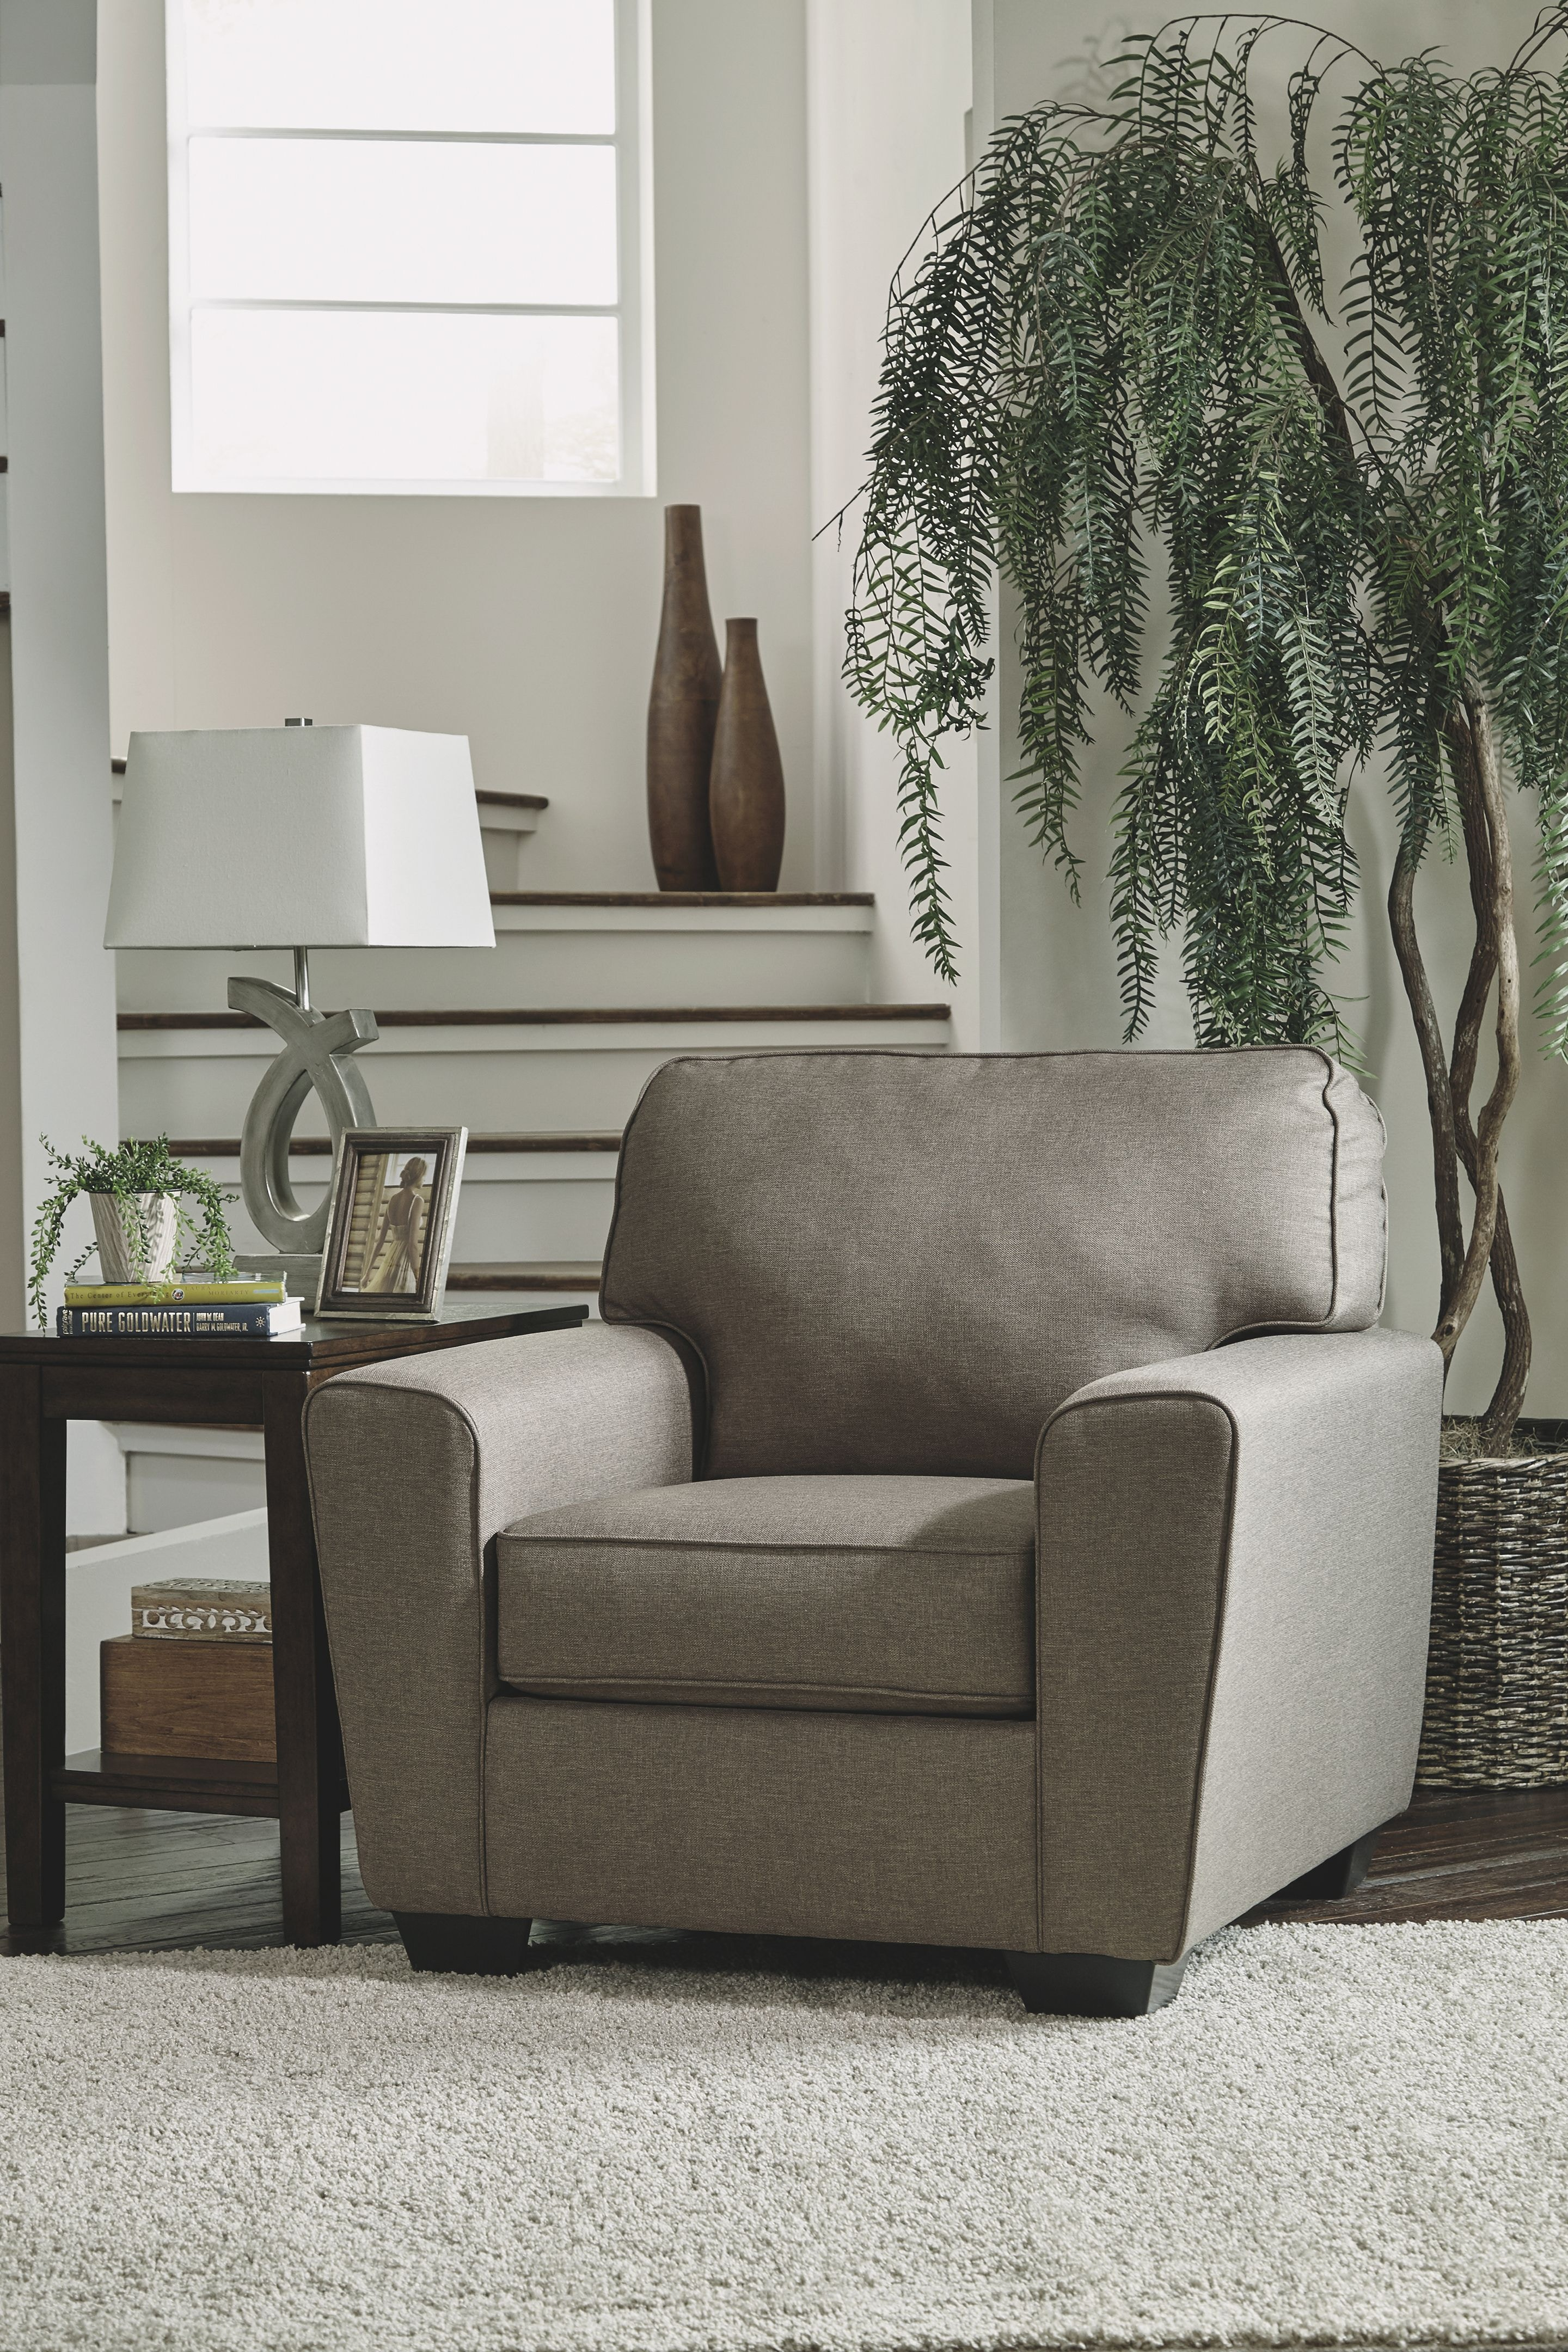 Benchcraft Living Room Chair